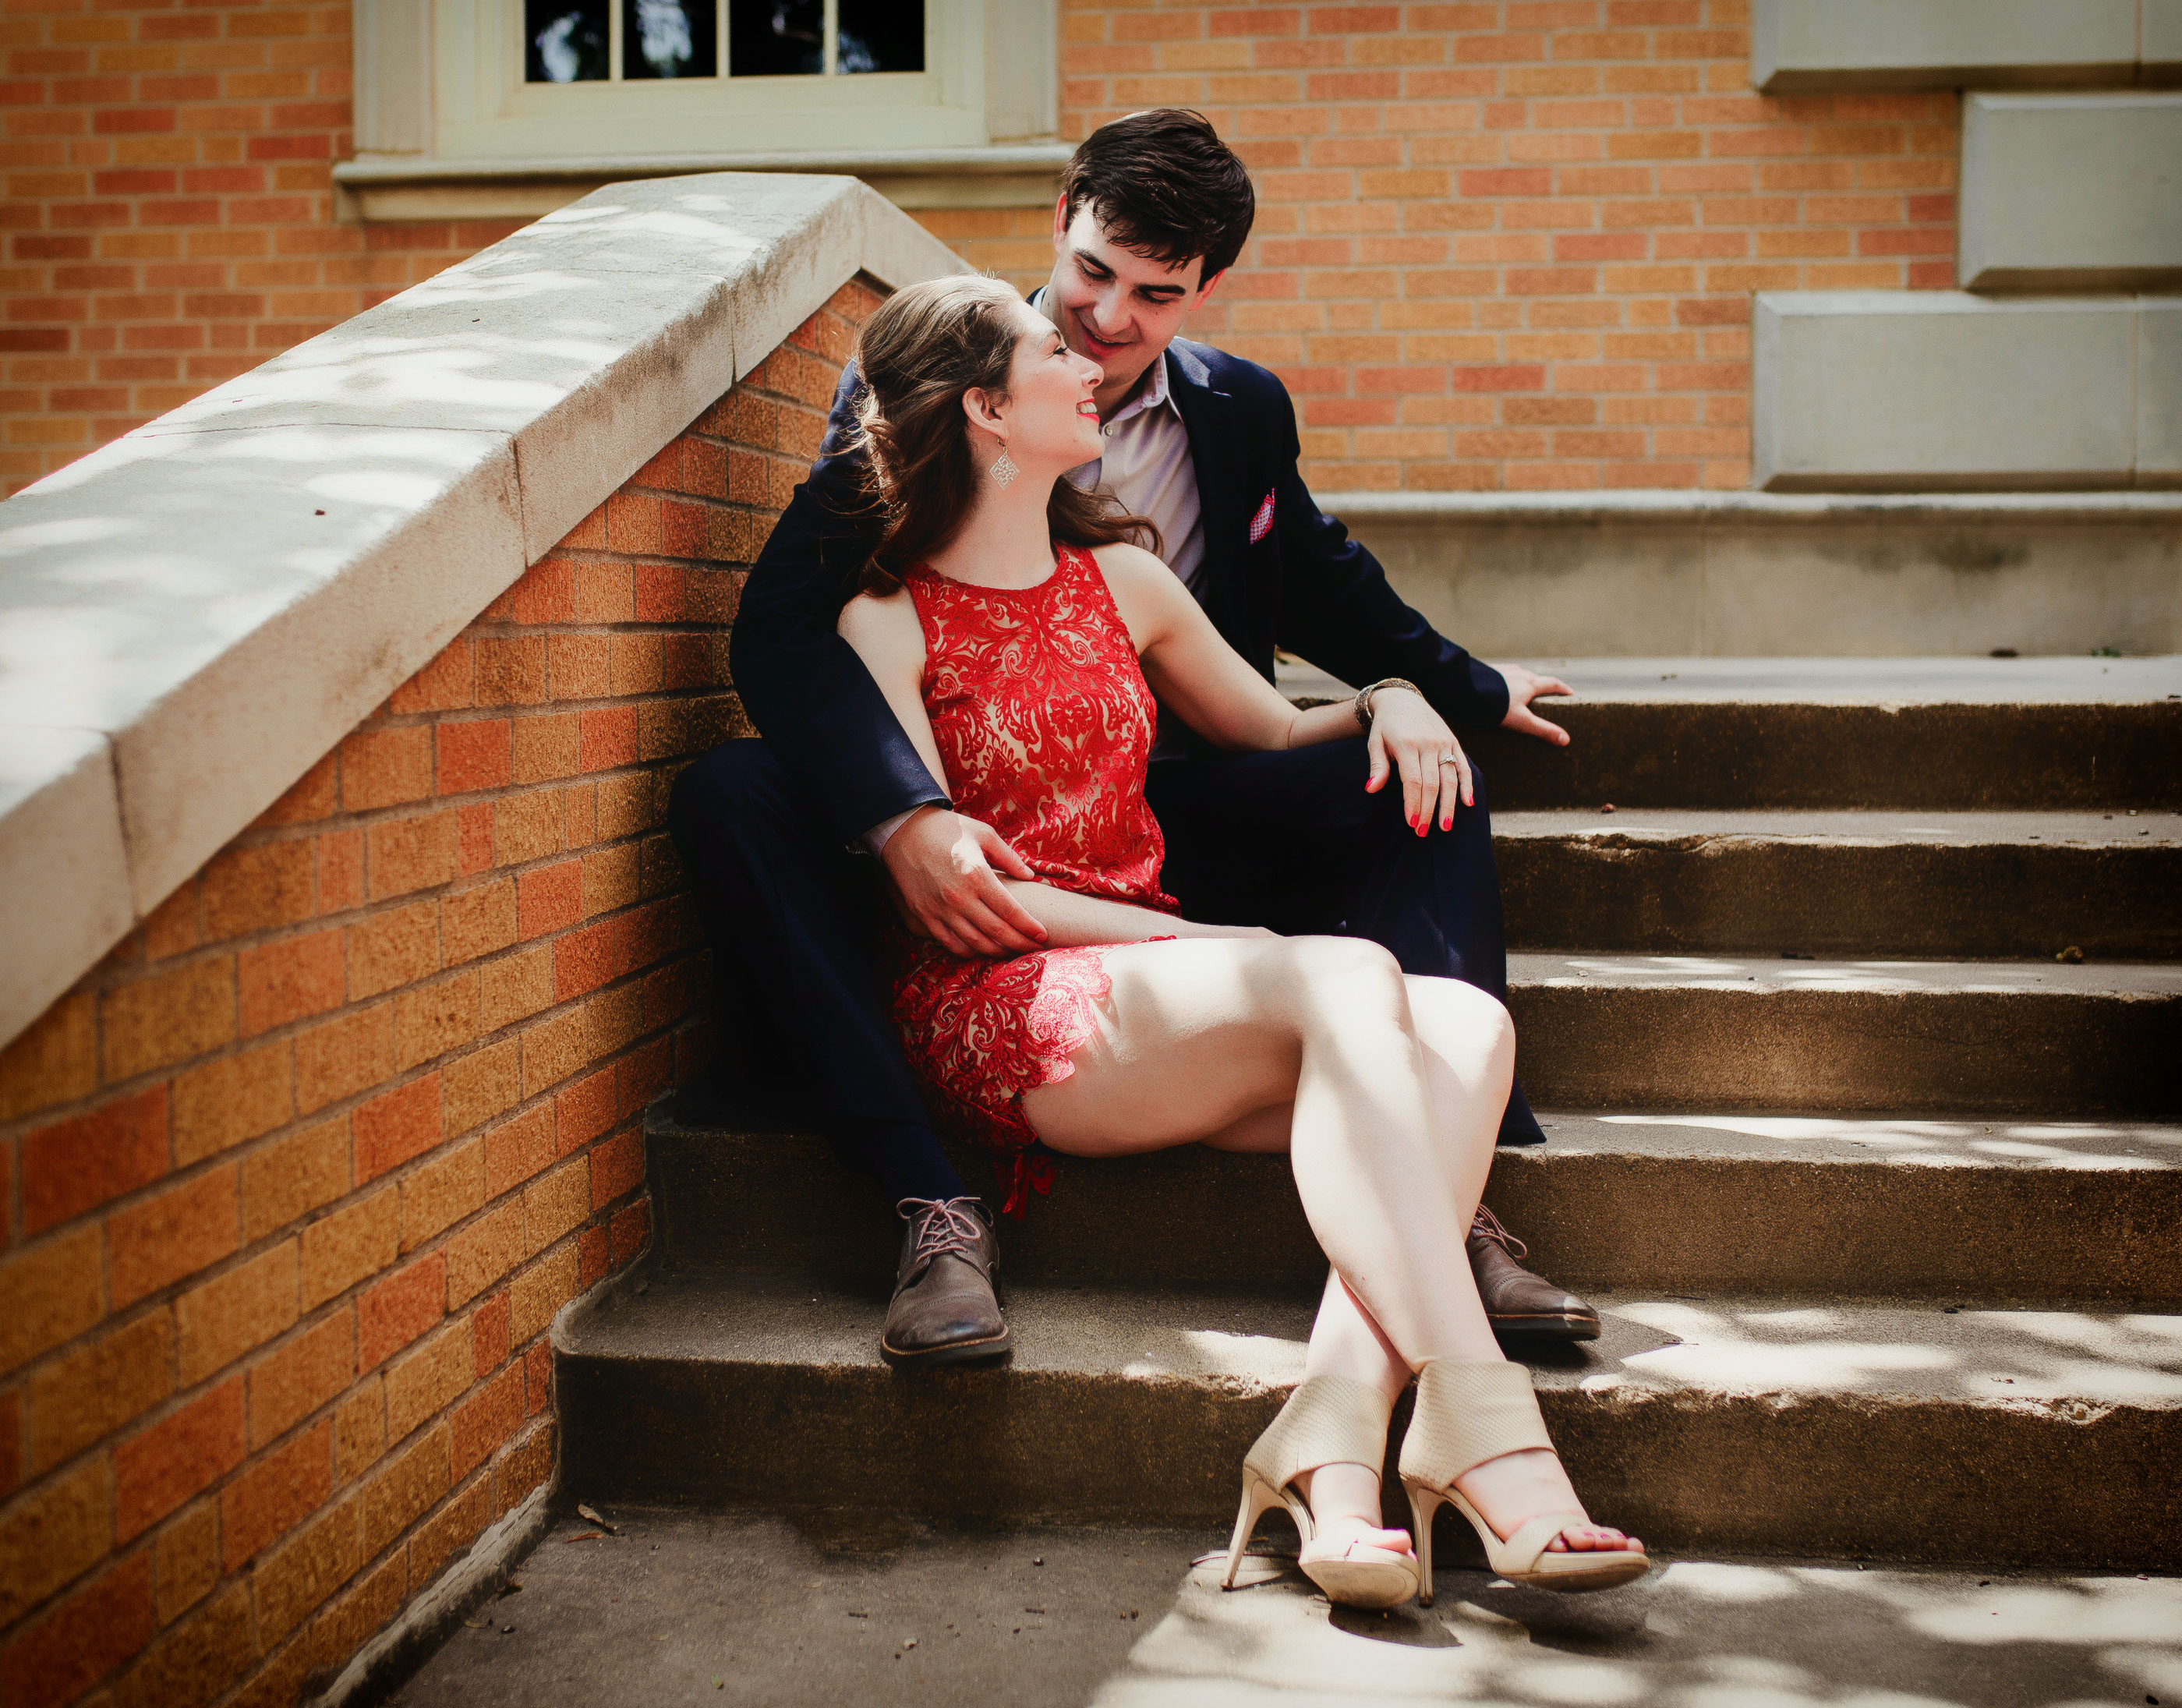 katy Beth Irwin McGahey ('17) and Ryan McGahey ('17, '18 M.B.A.) got engaged at UNT's Hurley Administration Building.